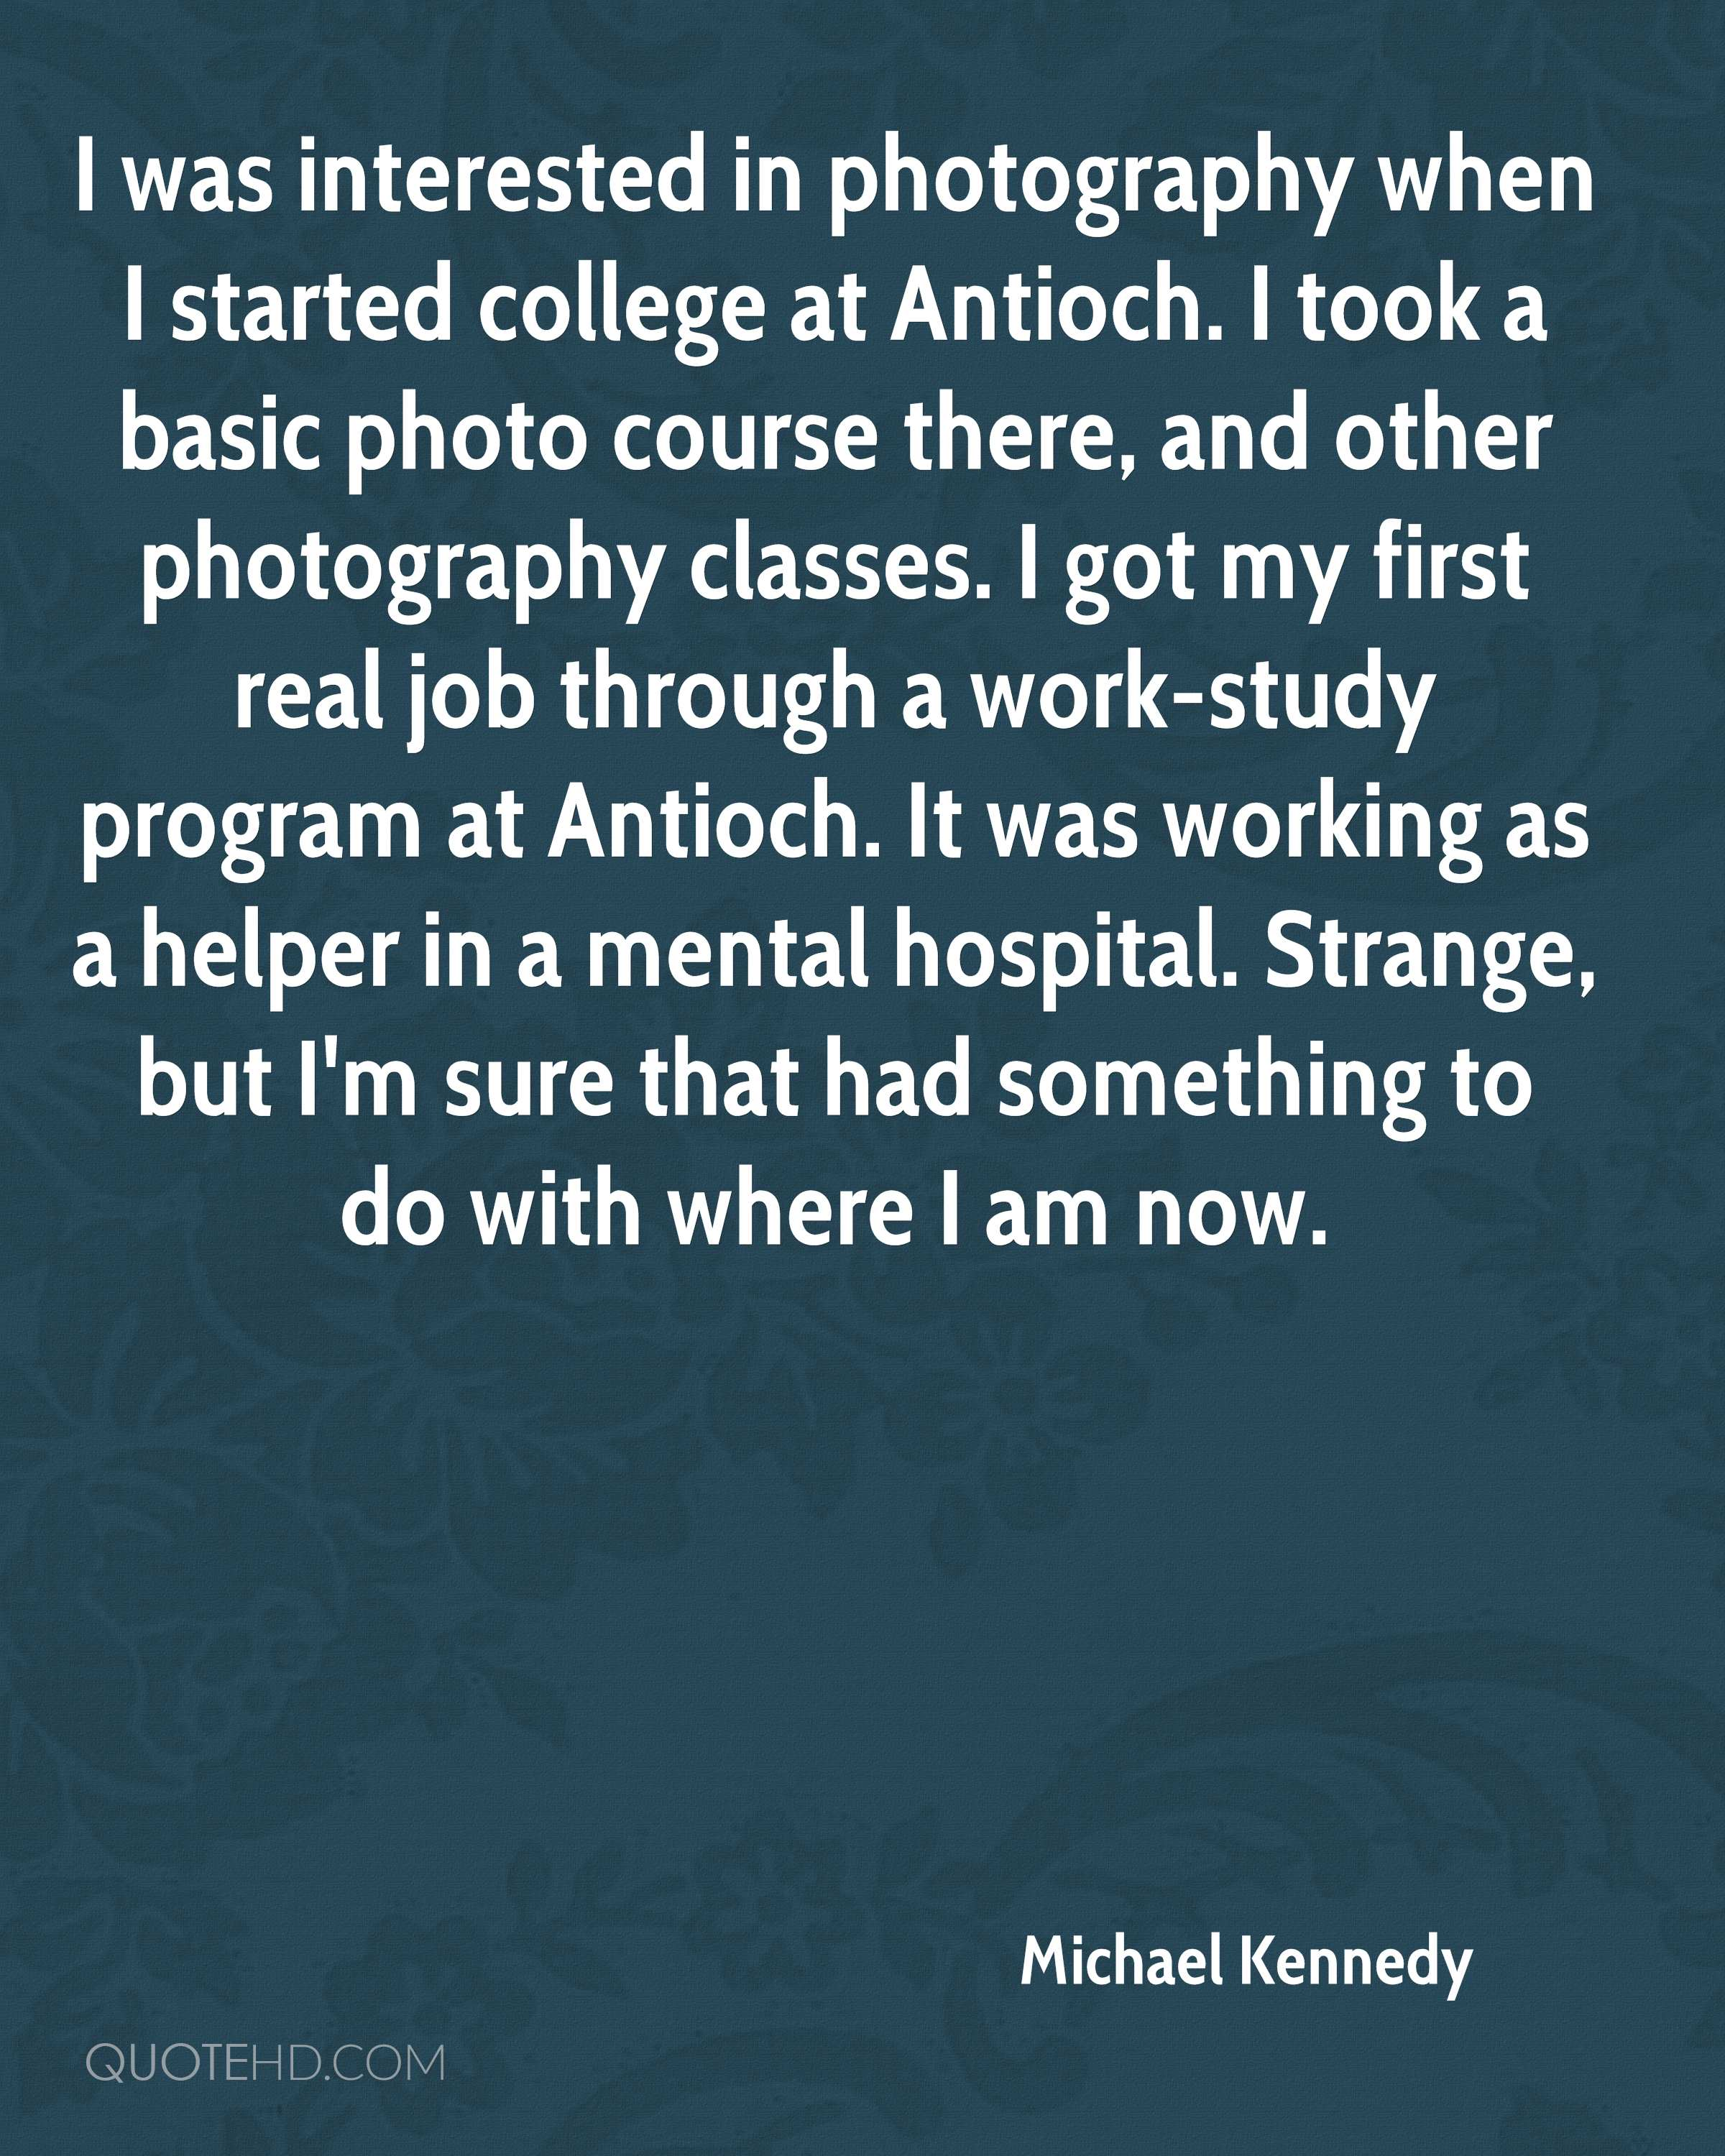 I was interested in photography when I started college at Antioch. I took a basic photo course there, and other photography classes. I got my first real job through a work-study program at Antioch. It was working as a helper in a mental hospital. Strange, but I'm sure that had something to do with where I am now.